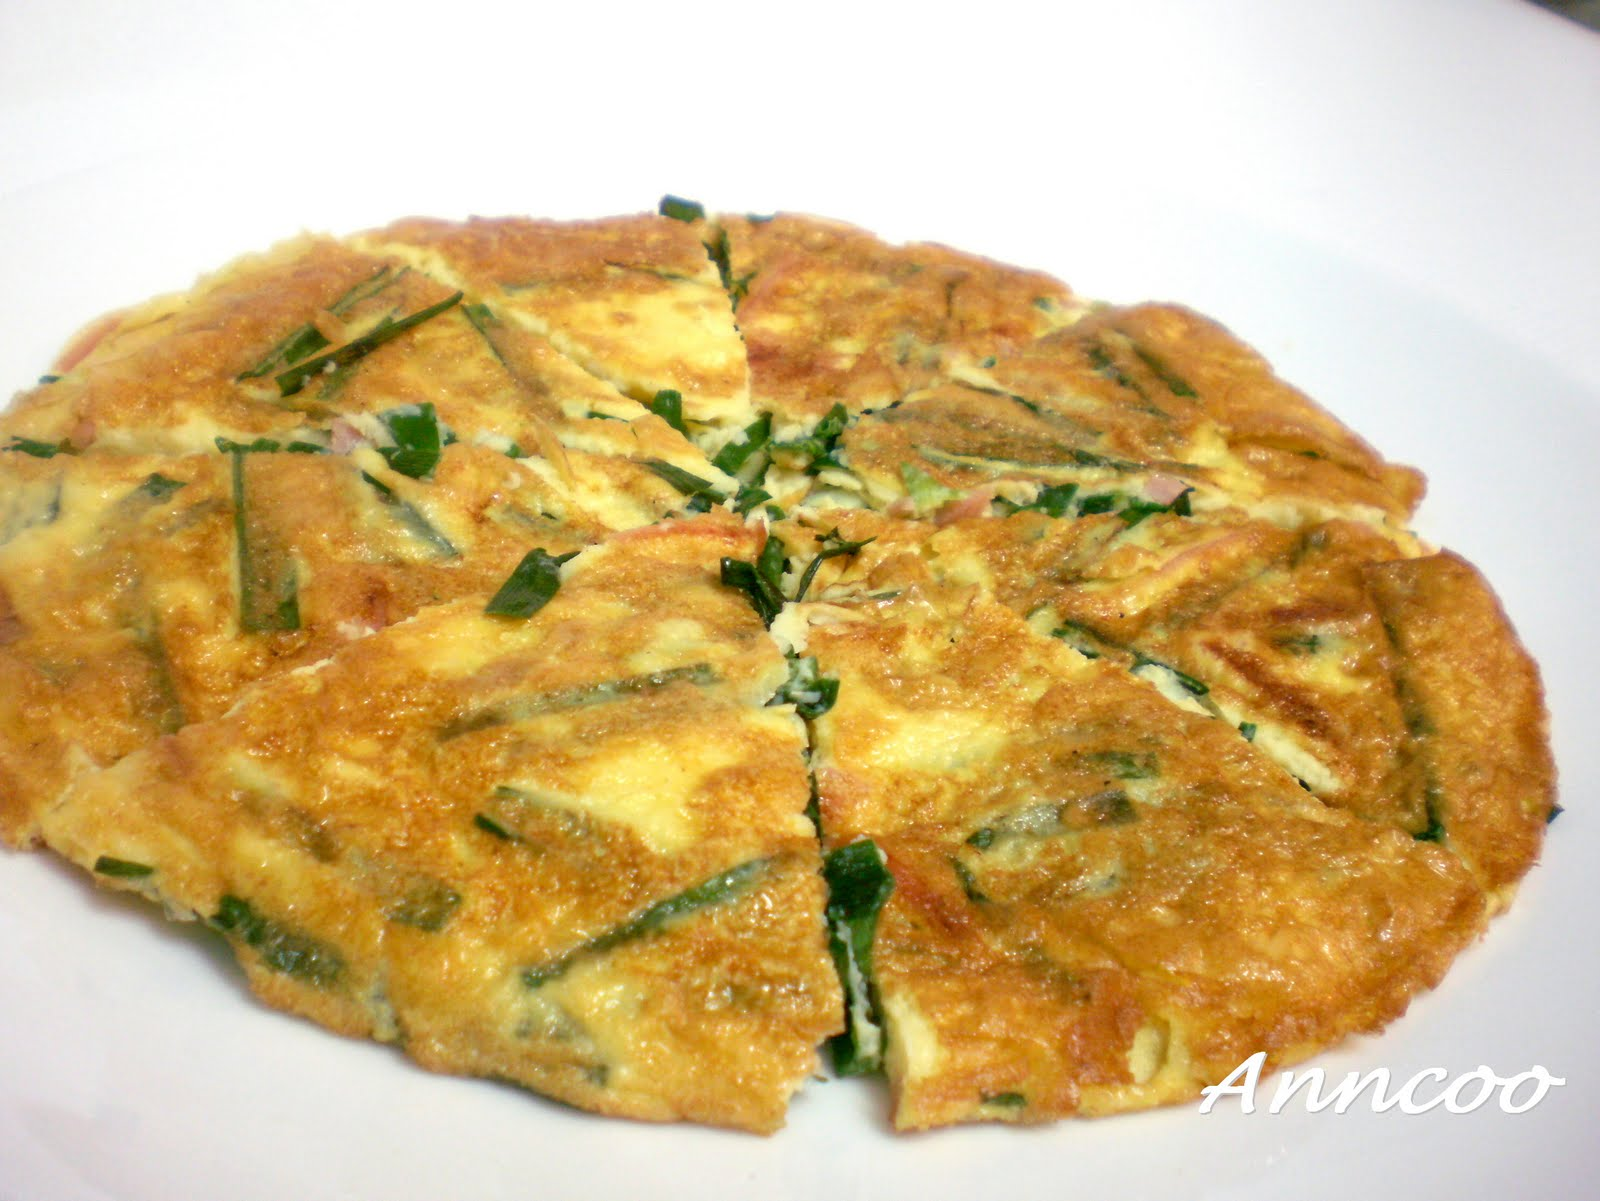 Omelette with Chives & Ham 韭菜火腿蛋